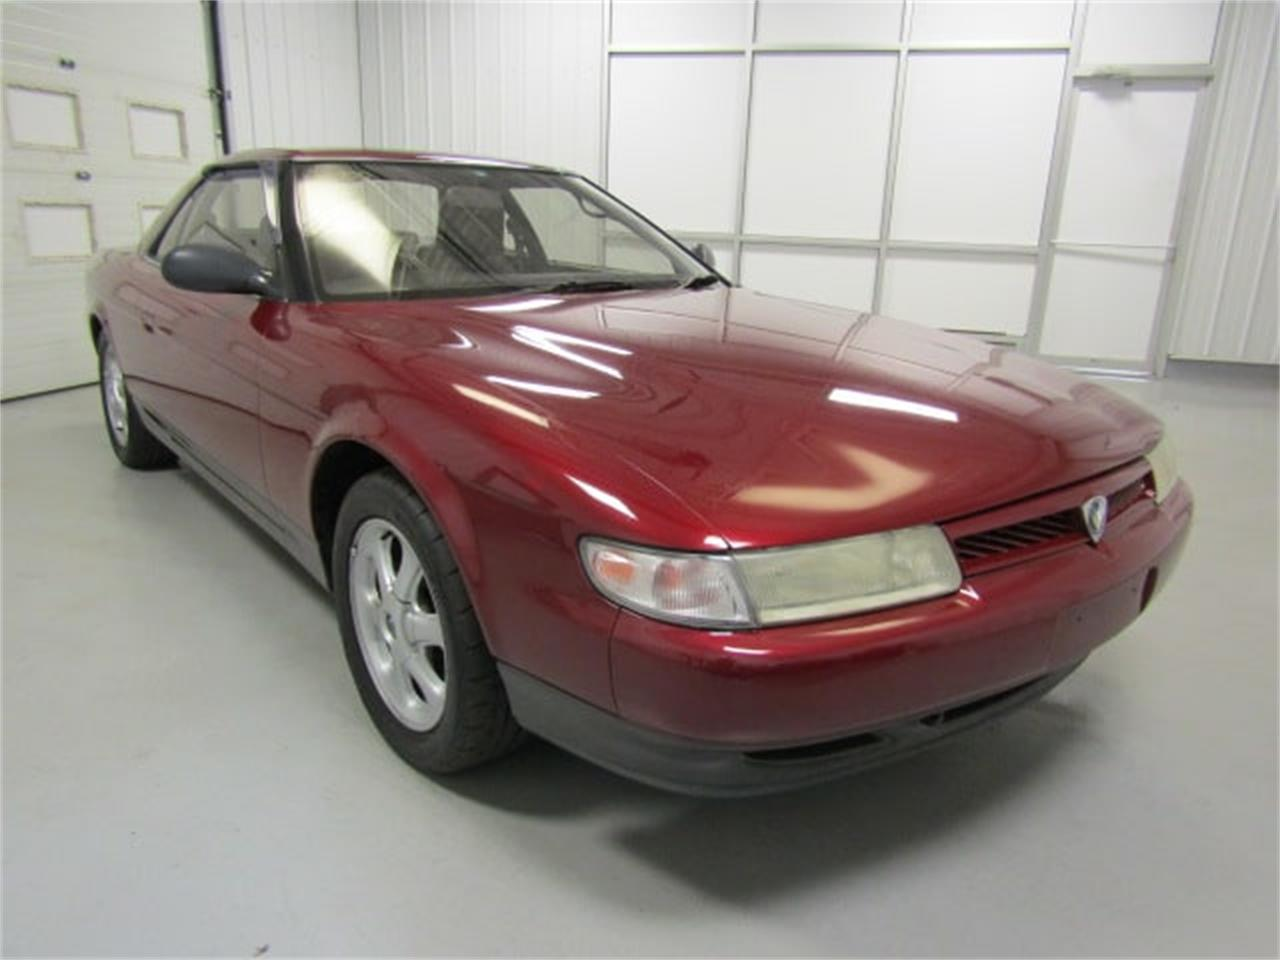 Large Picture of 1992 Eunos Cosmo - $12,900.00 Offered by Duncan Imports & Classic Cars - MZDH